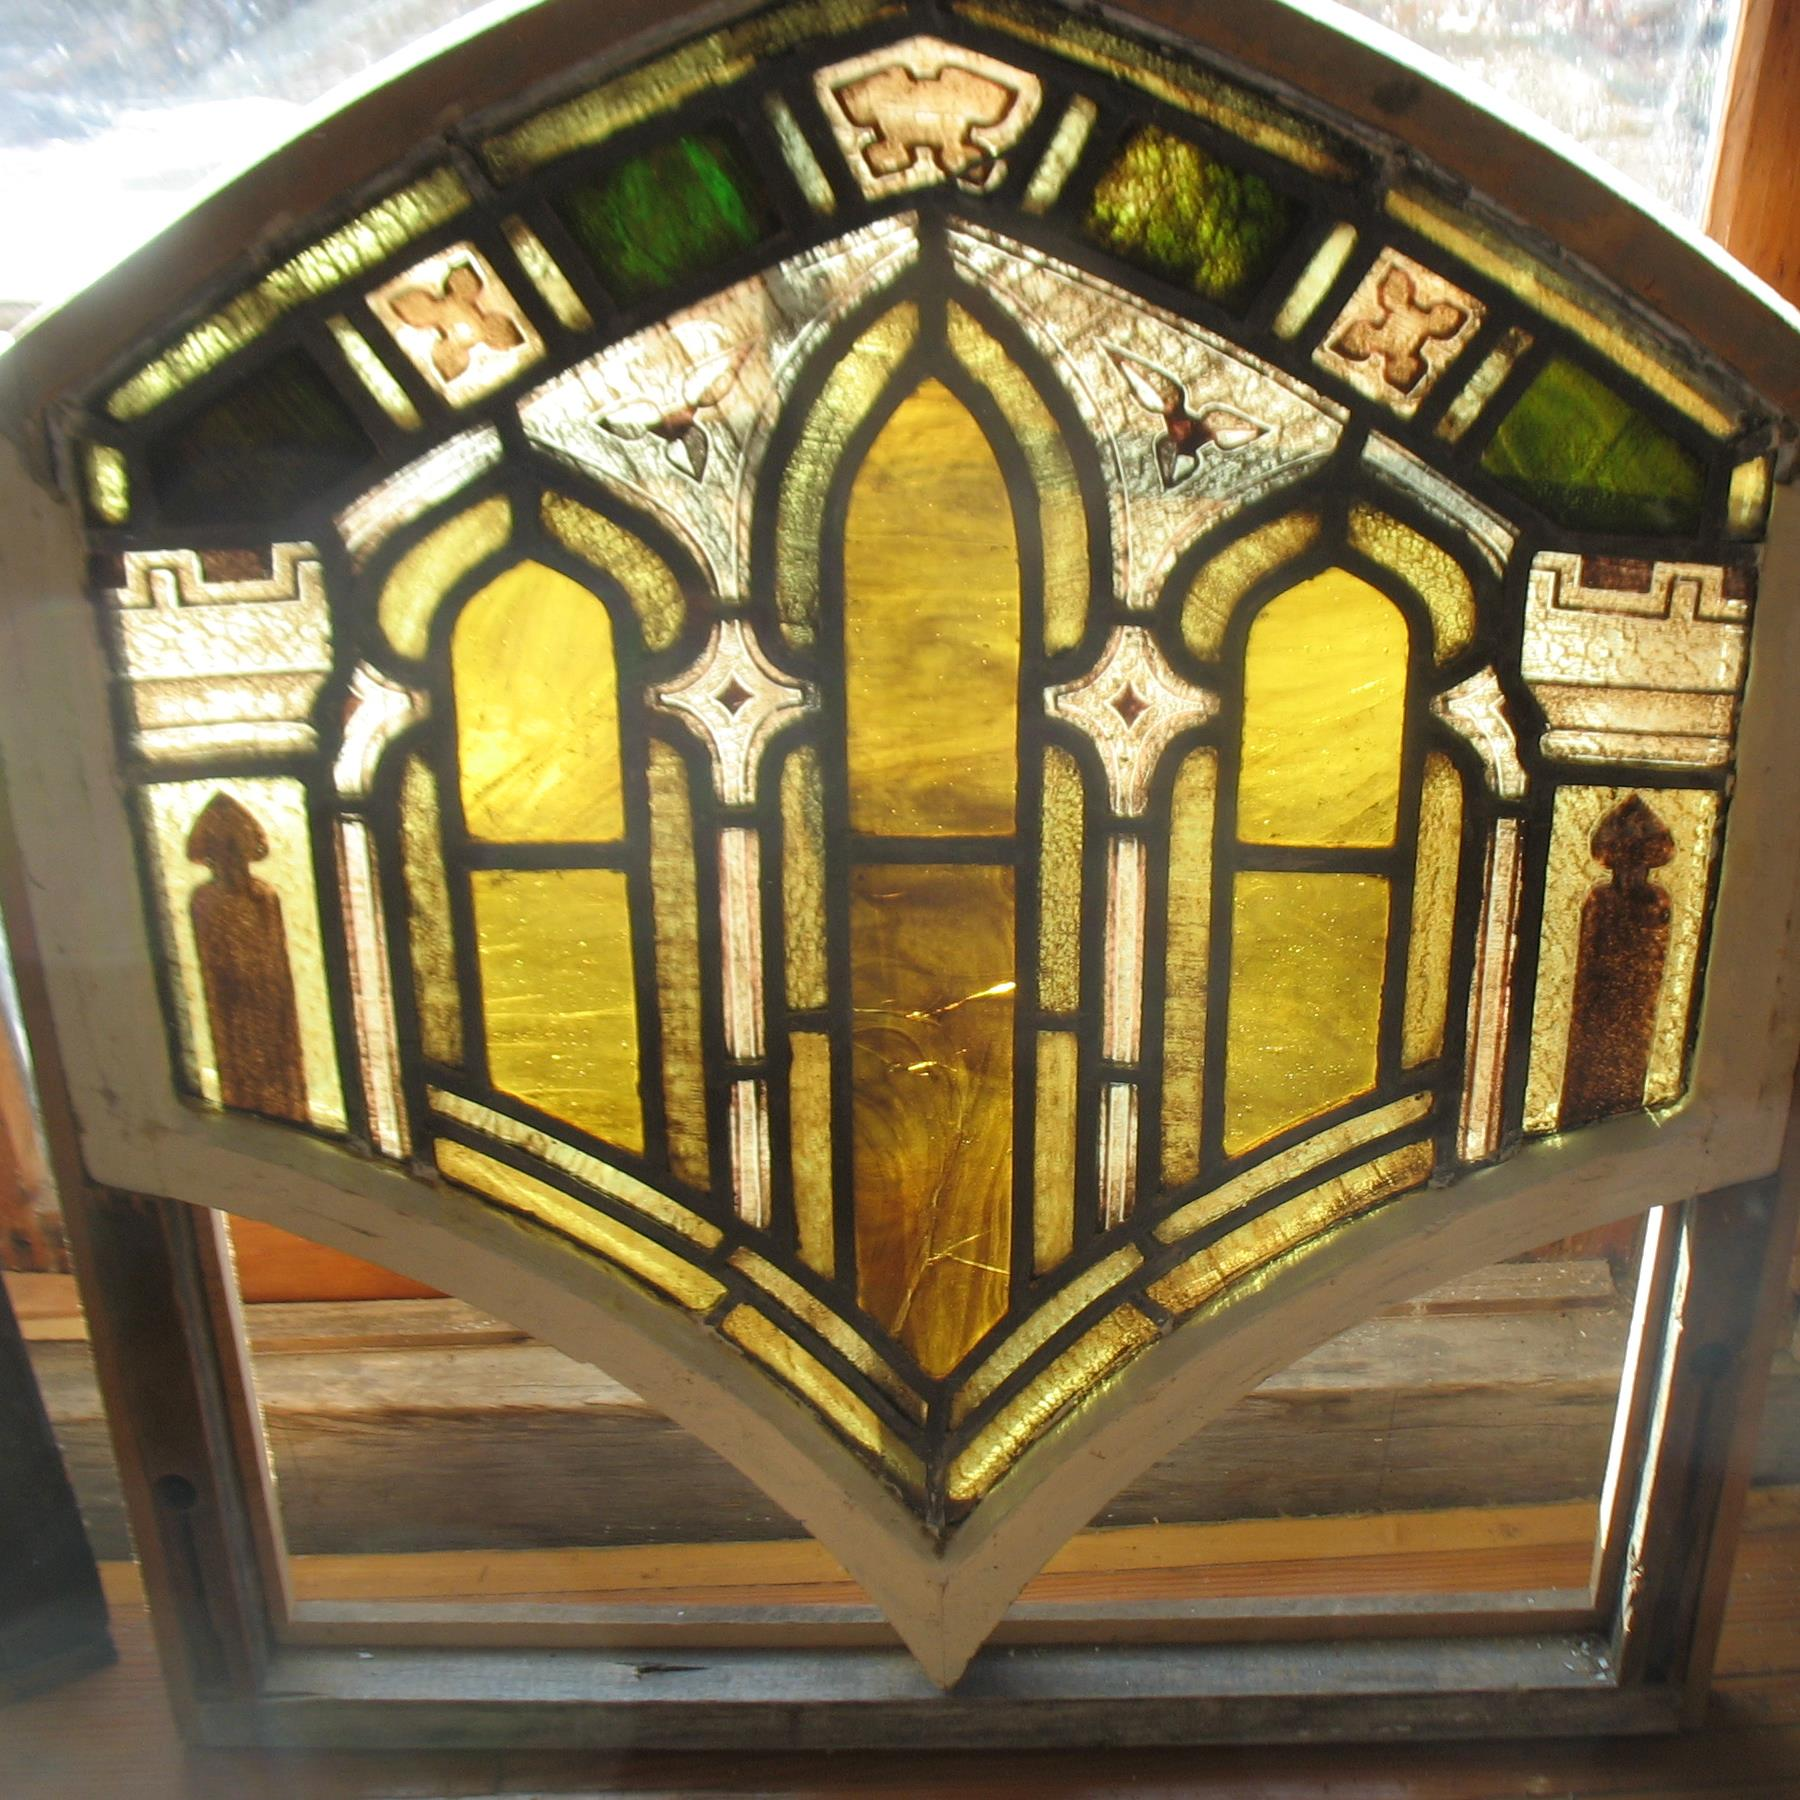 Stained Glass in unusual colors of Gold and Brown and is concave at top of window which again is very unusual